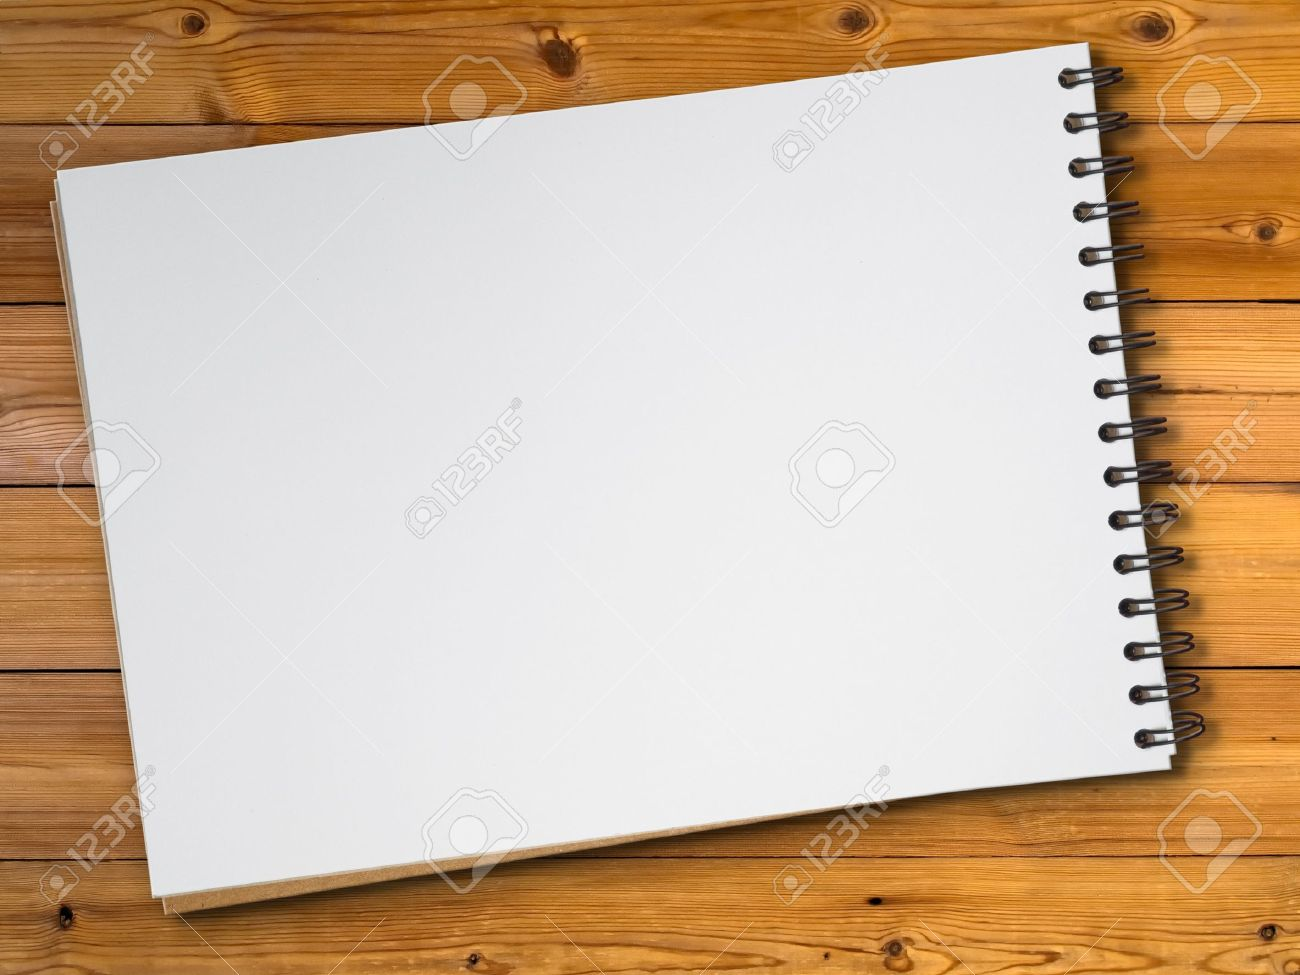 1300x975 White Blank Page Sketch Book On Wood Table Stock Photo, Picture